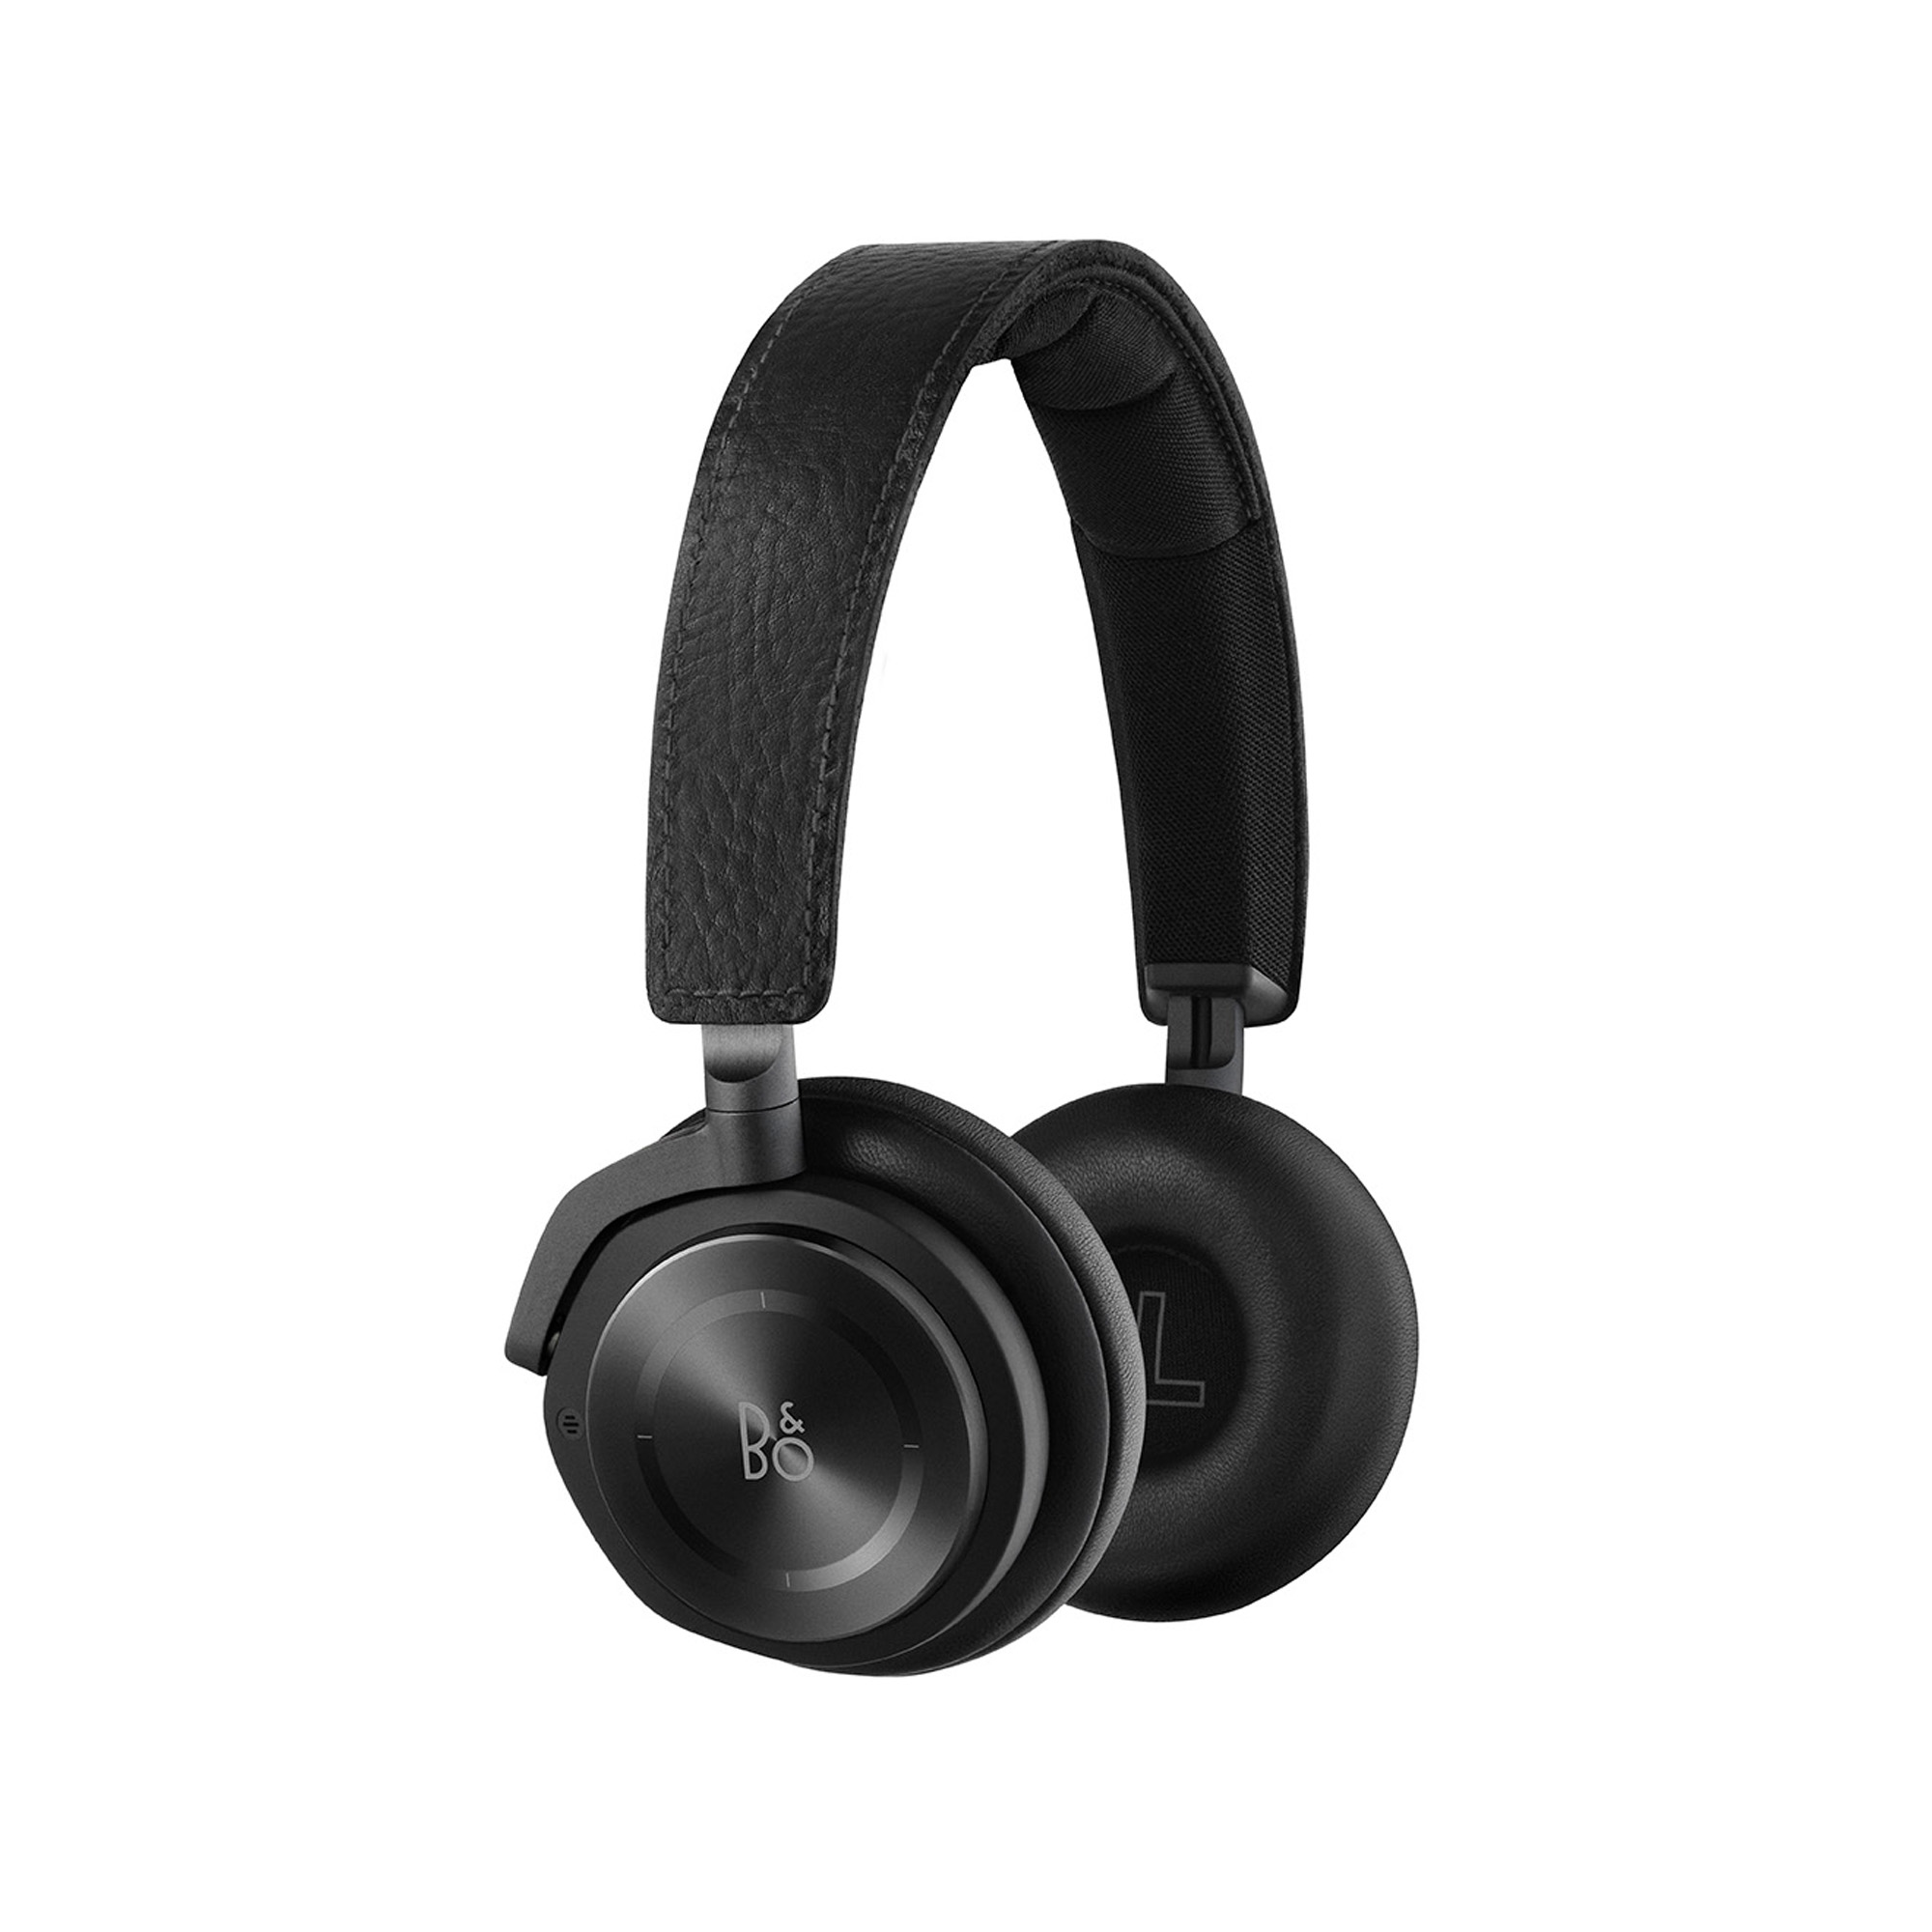 B&O Play รุ่น BeoPlay H8 Black